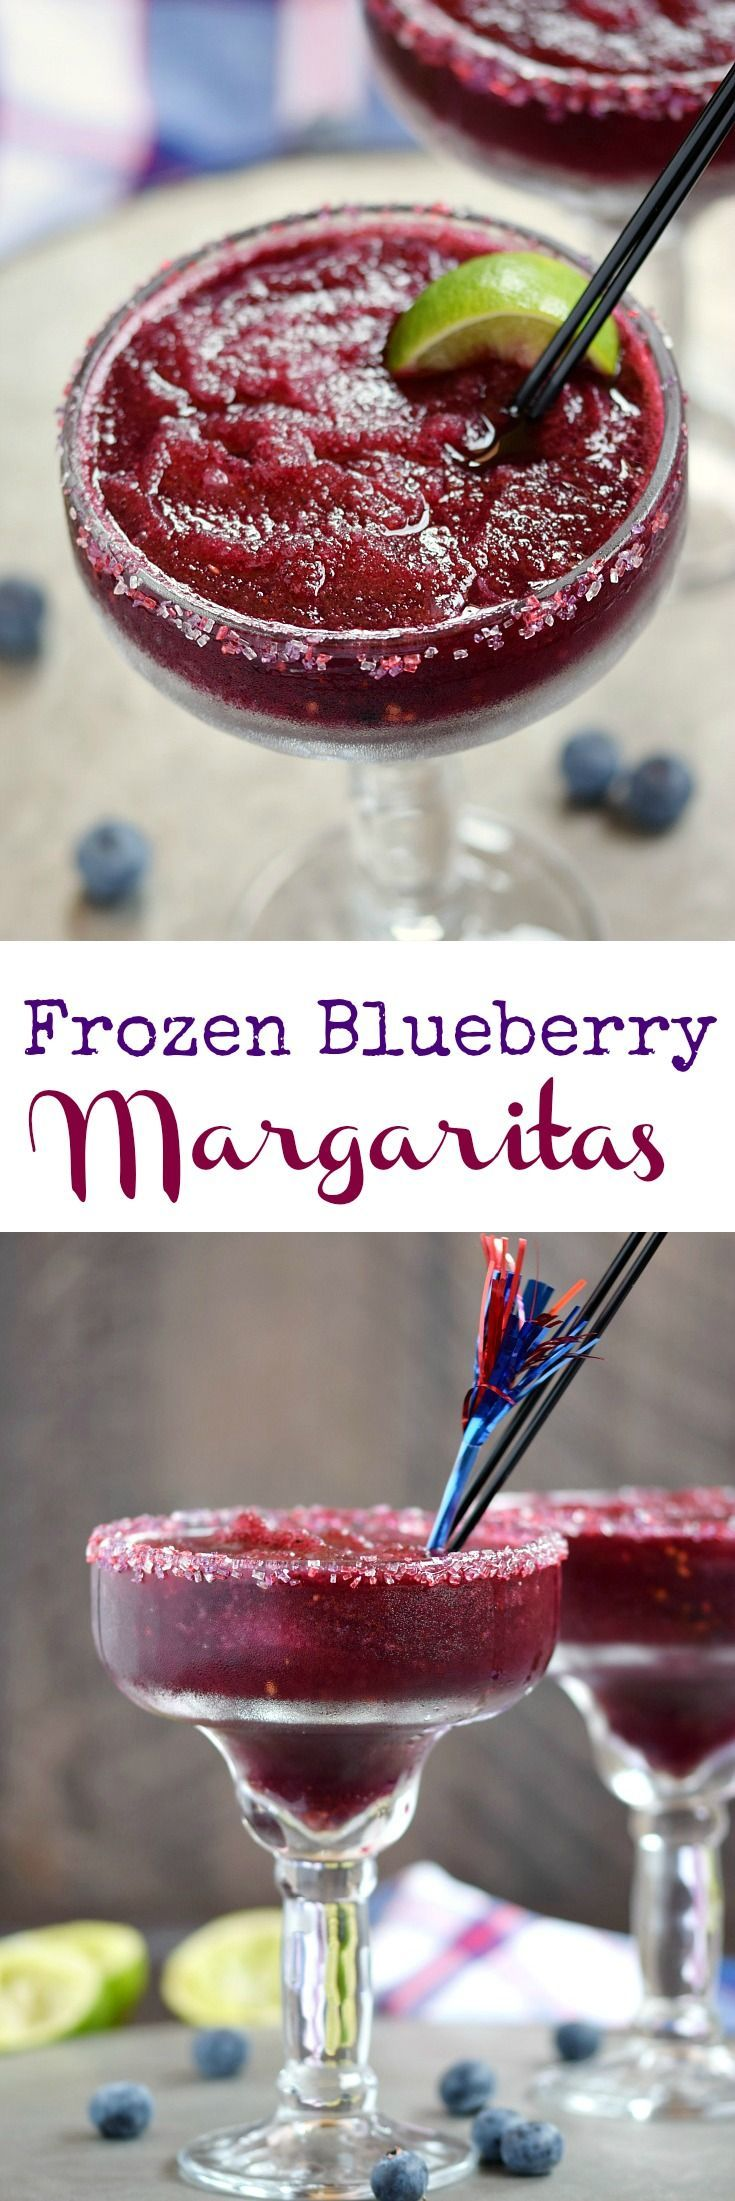 You can be festive and patriotic all summer long with these delicious Frozen Blueberry Margaritas | cookingwithcurls.com